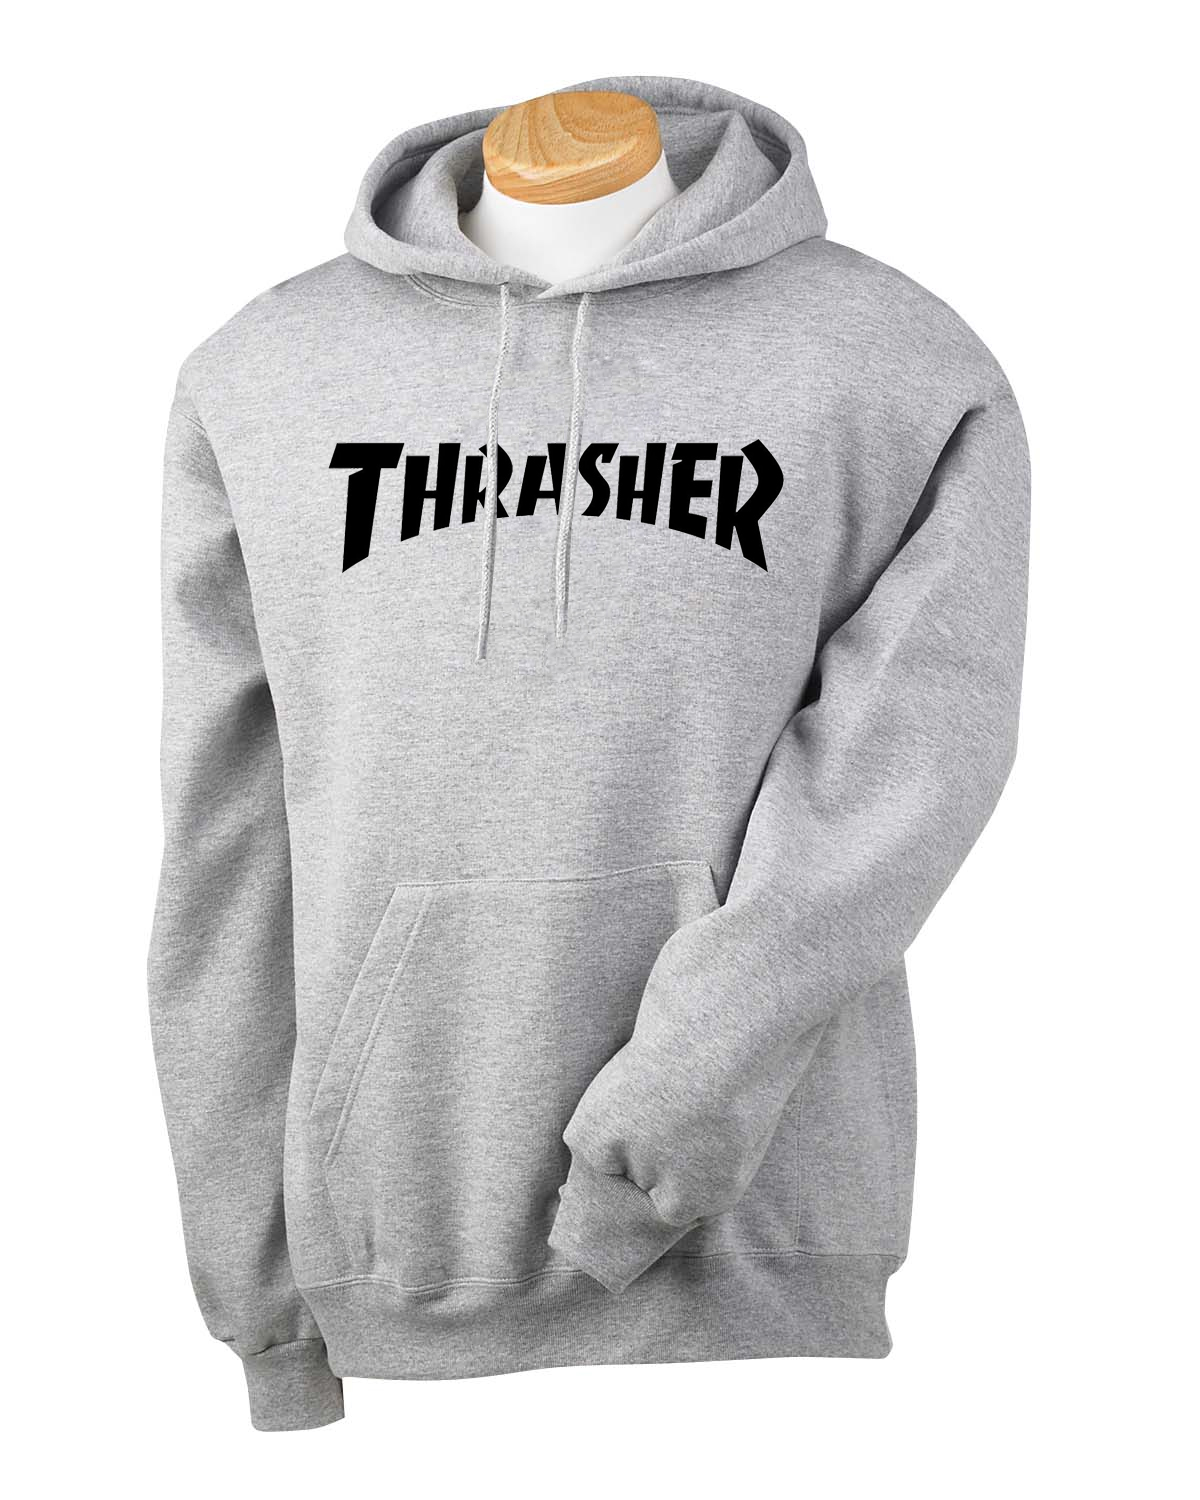 Thrasher logo Hoodie Unisex Adult size S - 2XL